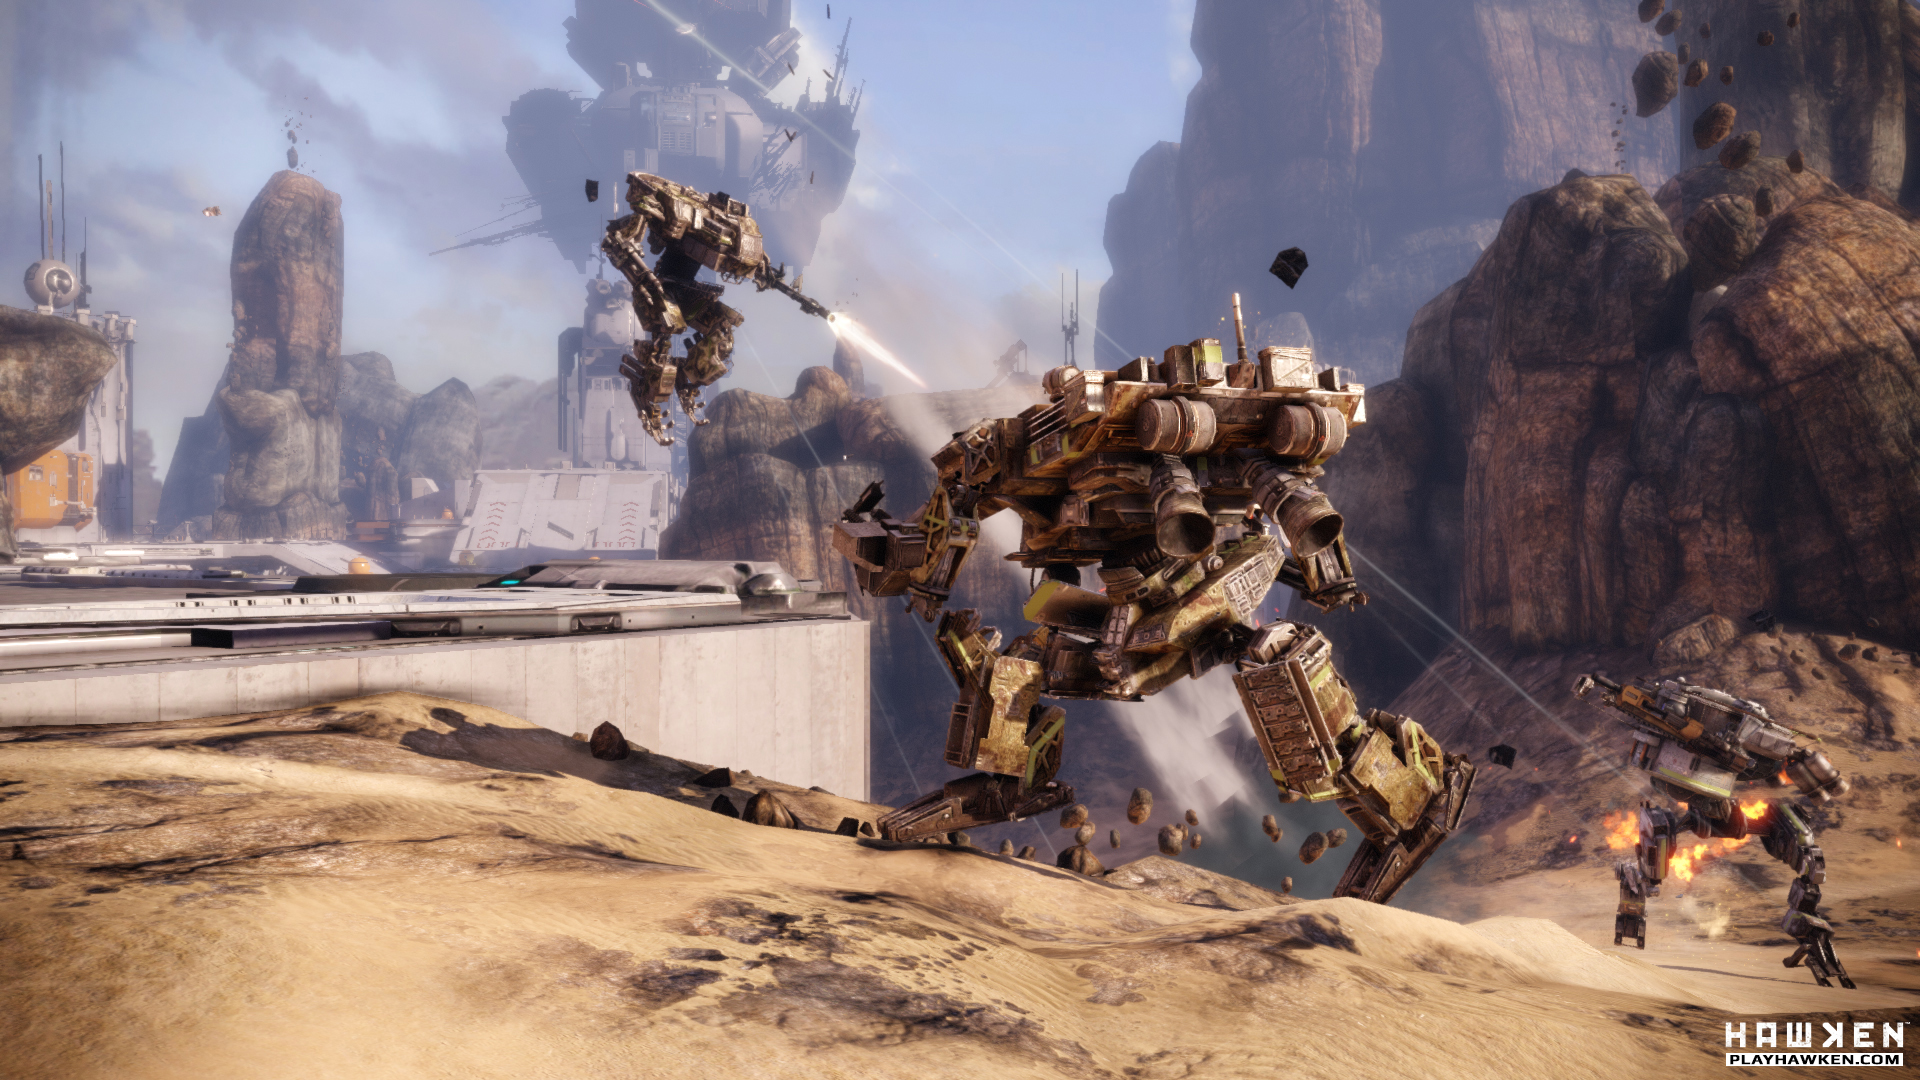 hawken screenshots free to play multiplayer first person shooter